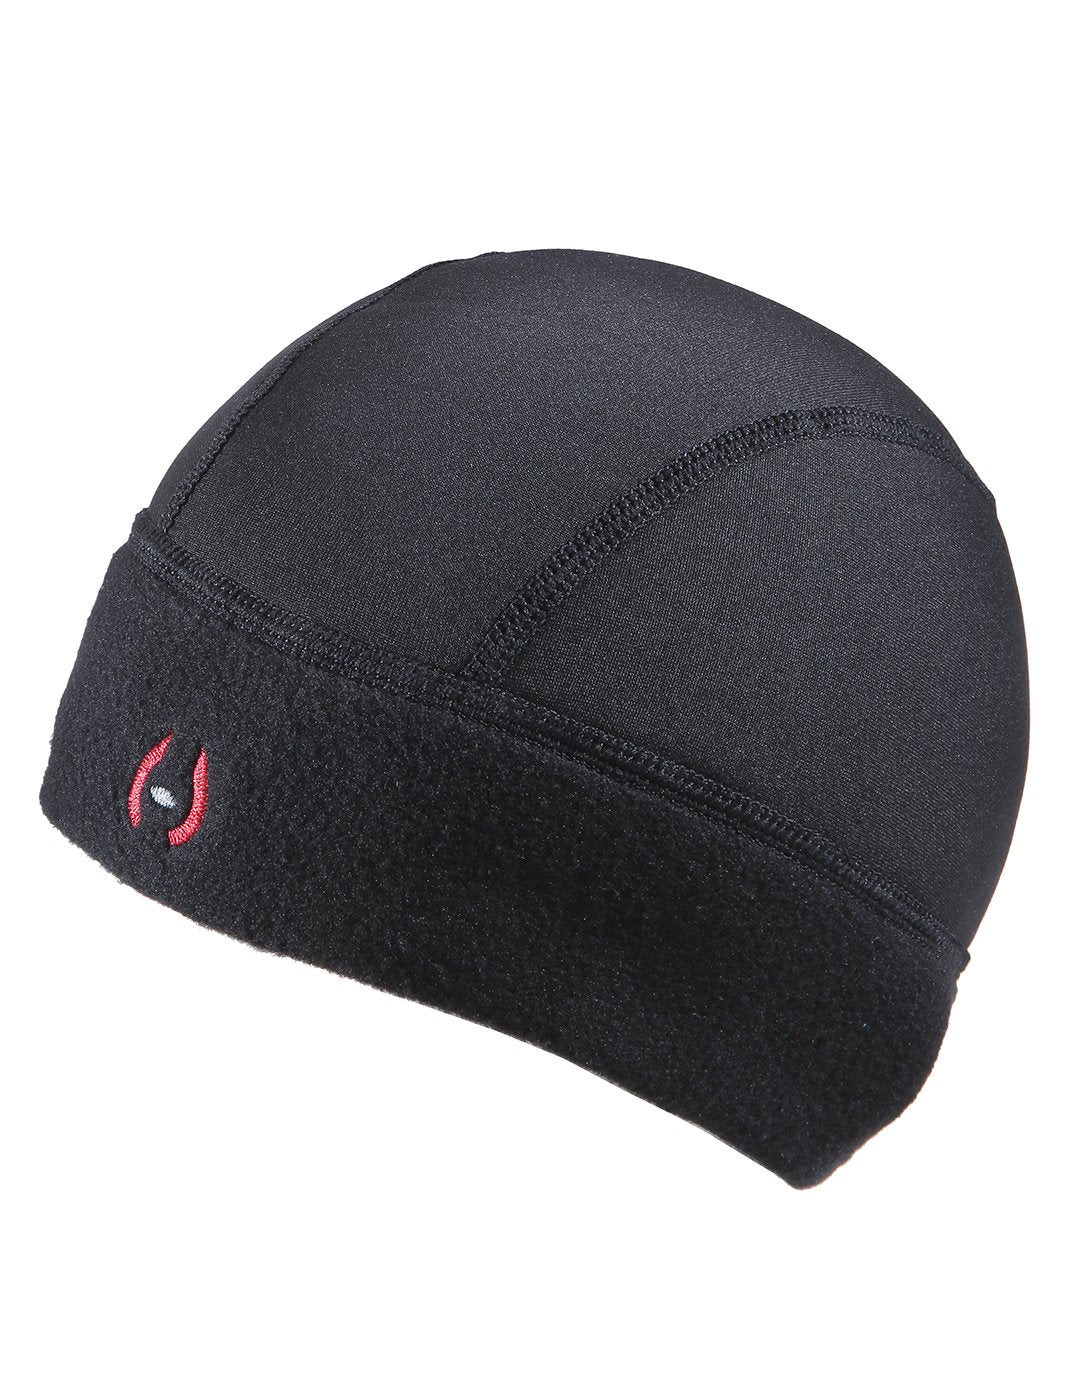 Image of Hollis Beanie Hat